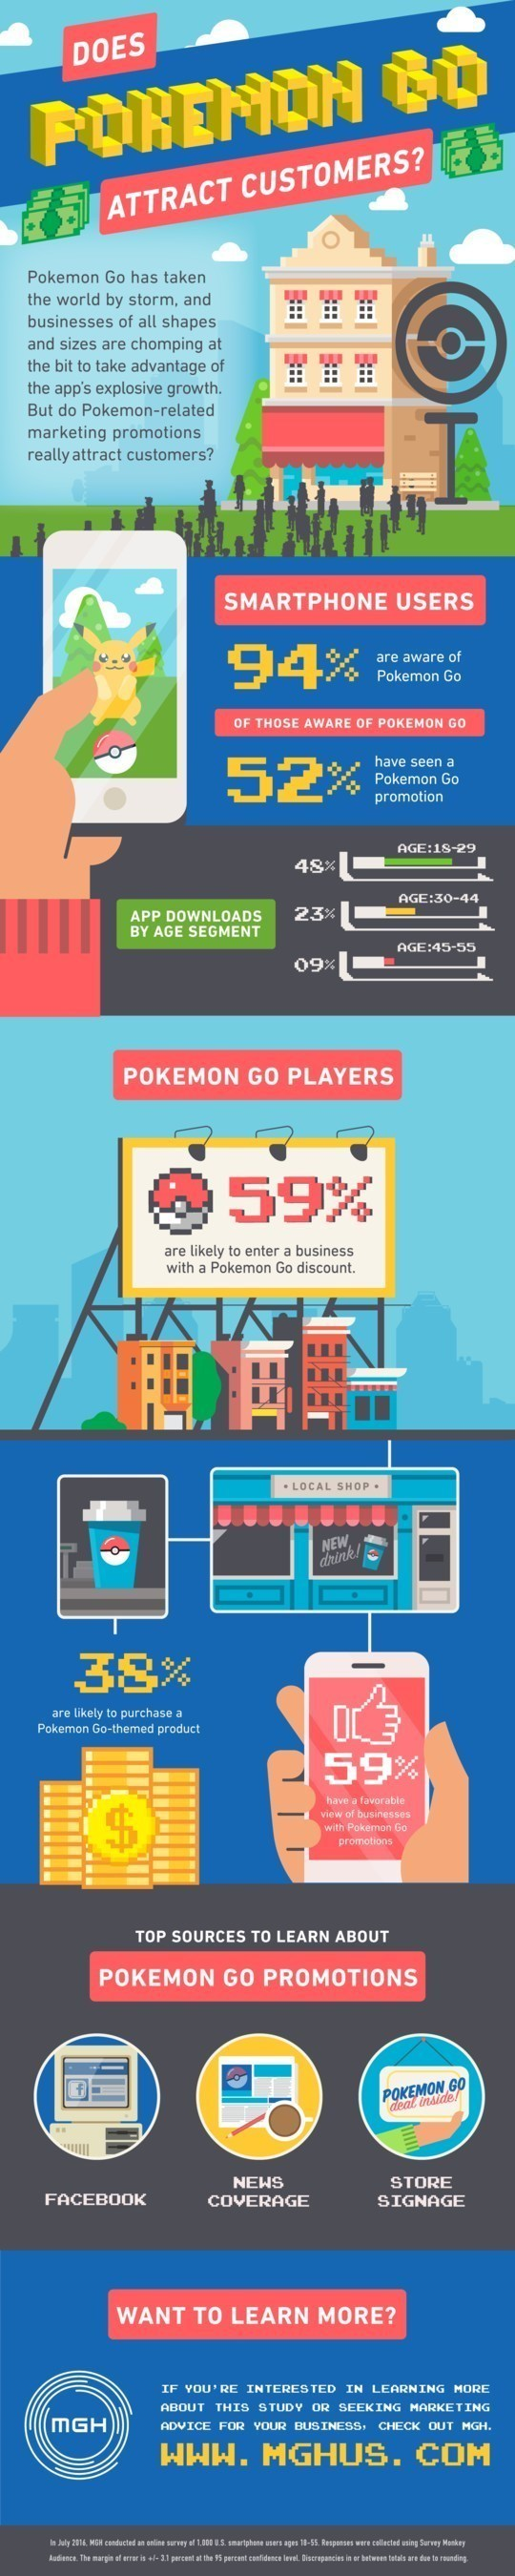 Infographic displays results from a survey conducted last month of smartphone users to uncover if businesses hosting Pokemon Go promotions attracted customers.